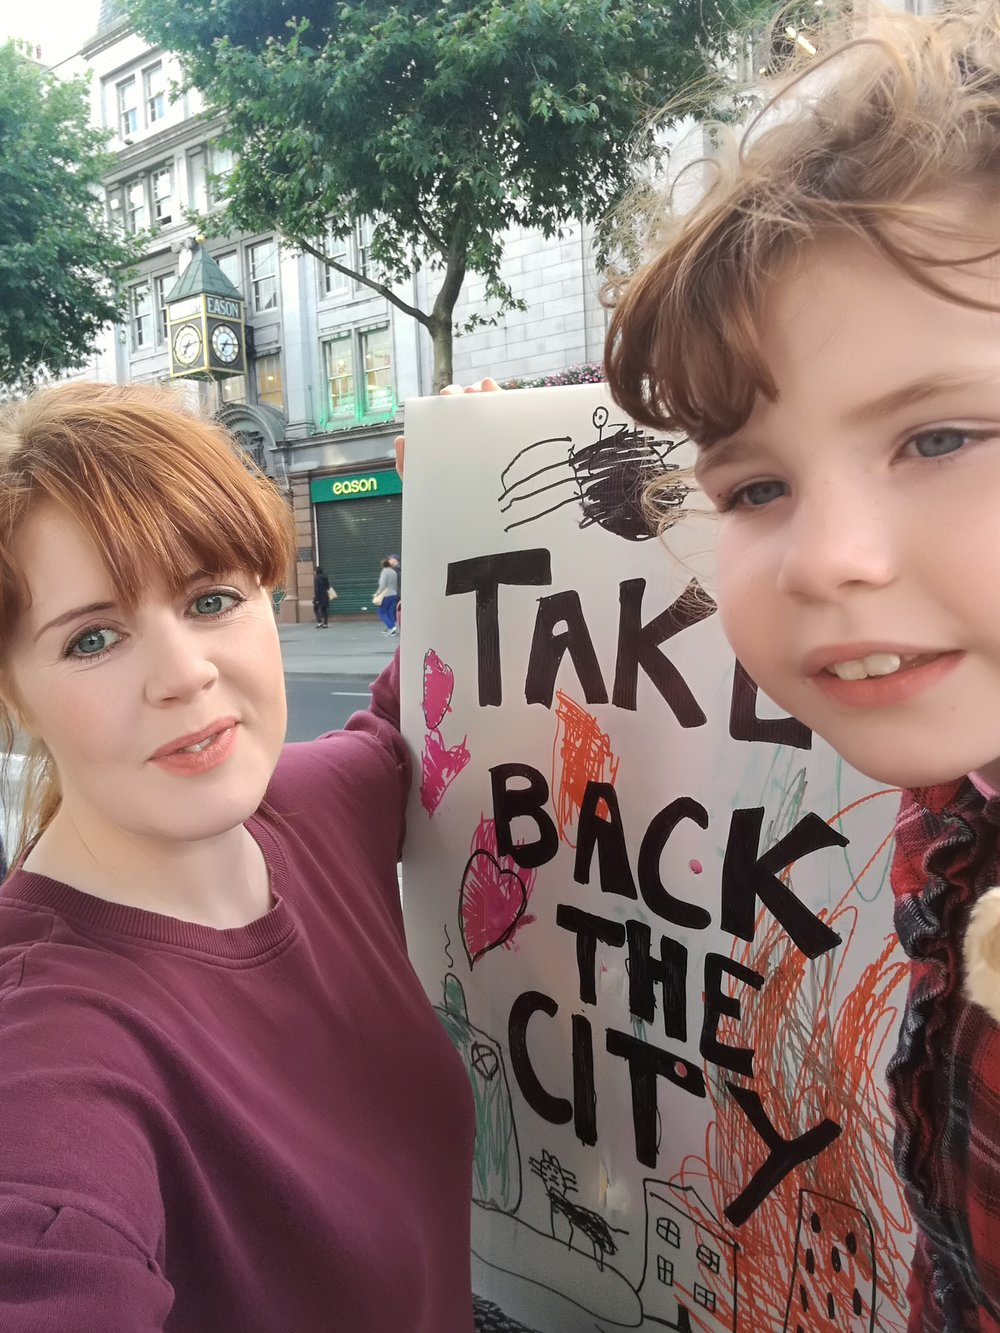 On the very first Take Back the City protest